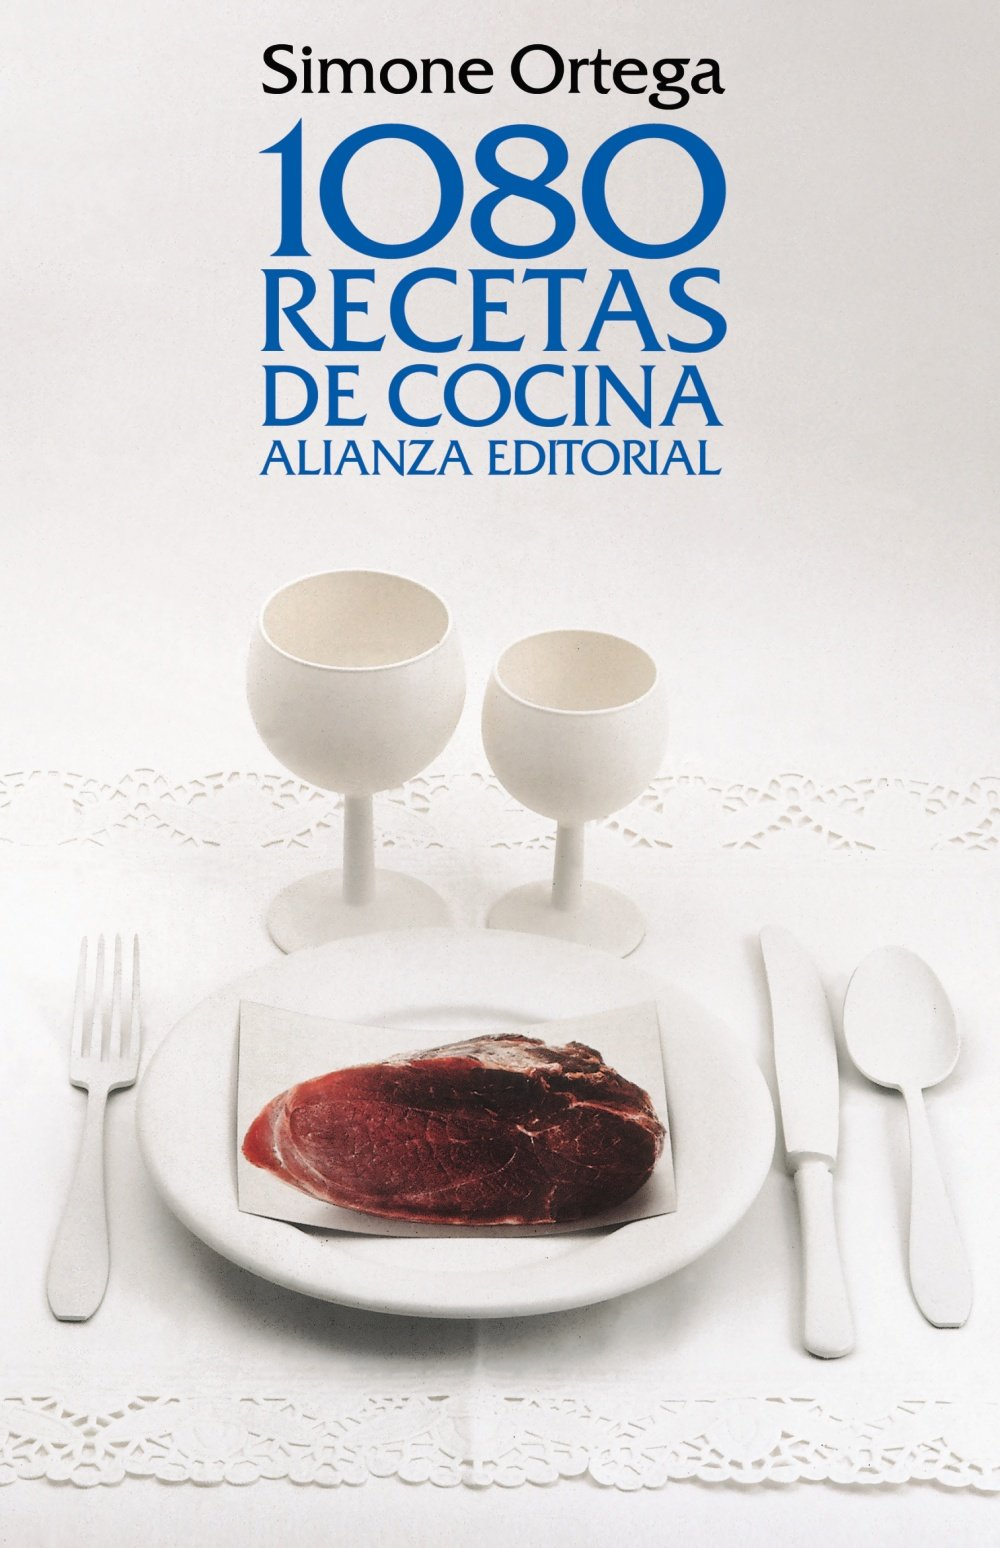 1080 recetas de cocina / 1080 cooking recipes (Spanish Edition): Simone  Ortega: 9788420649986: Amazon.com: Books